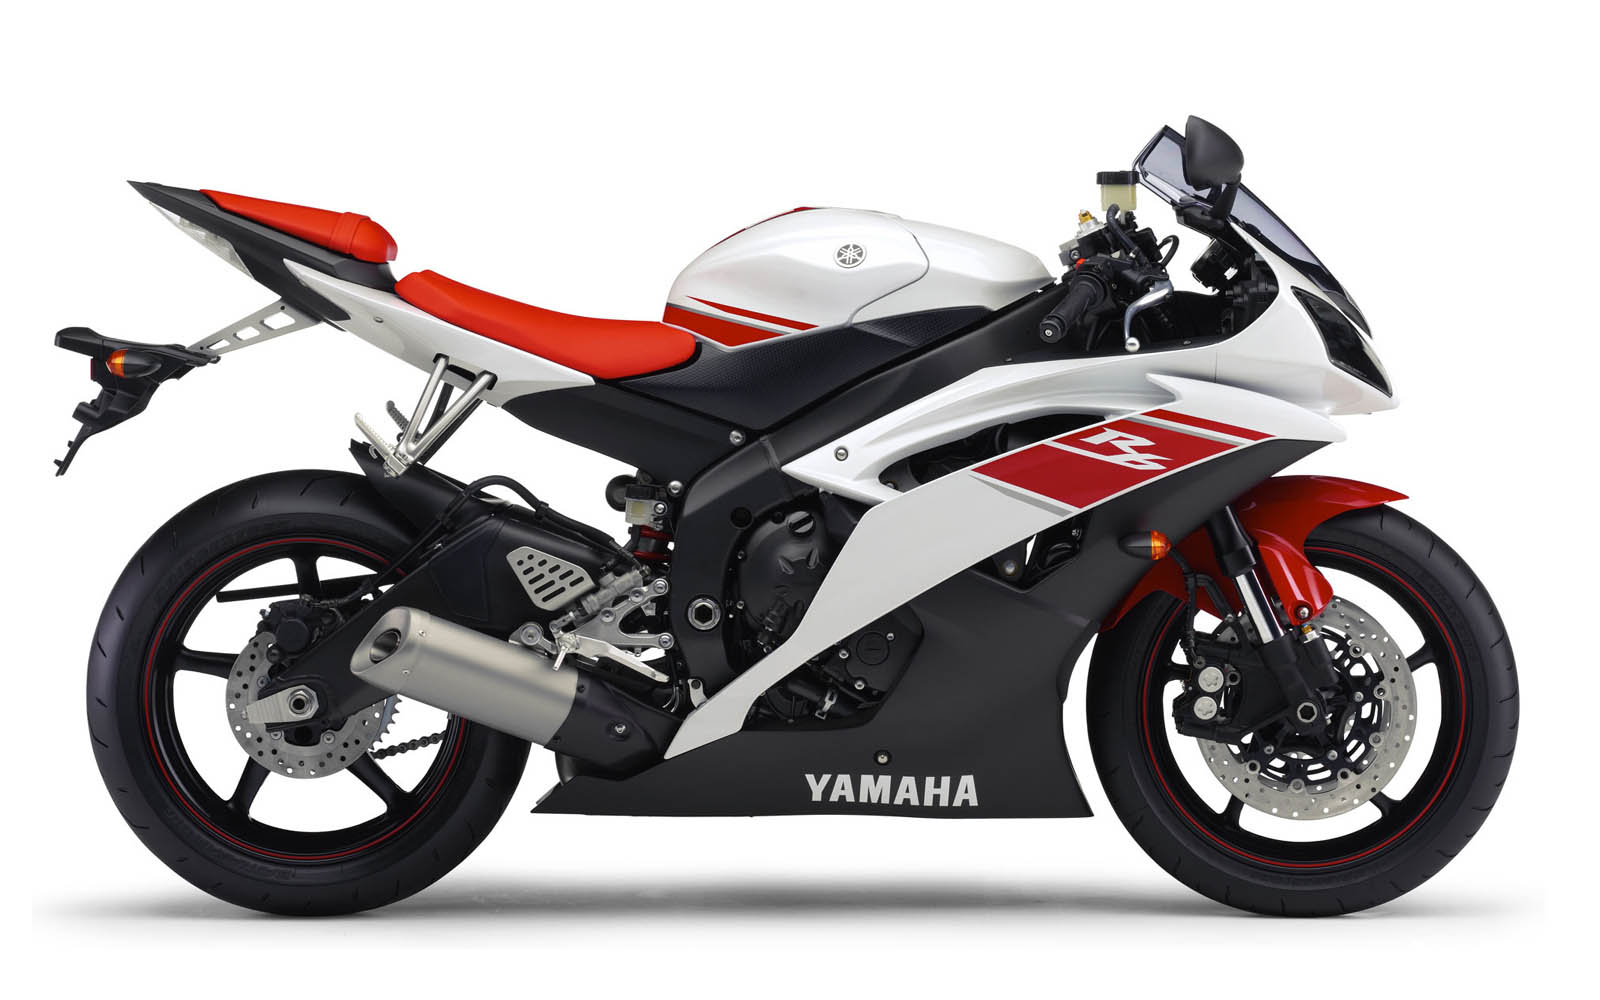 Tag Yamaha R6 Bike Wallpapers BackgroundsPhotos Images and 1600x1000